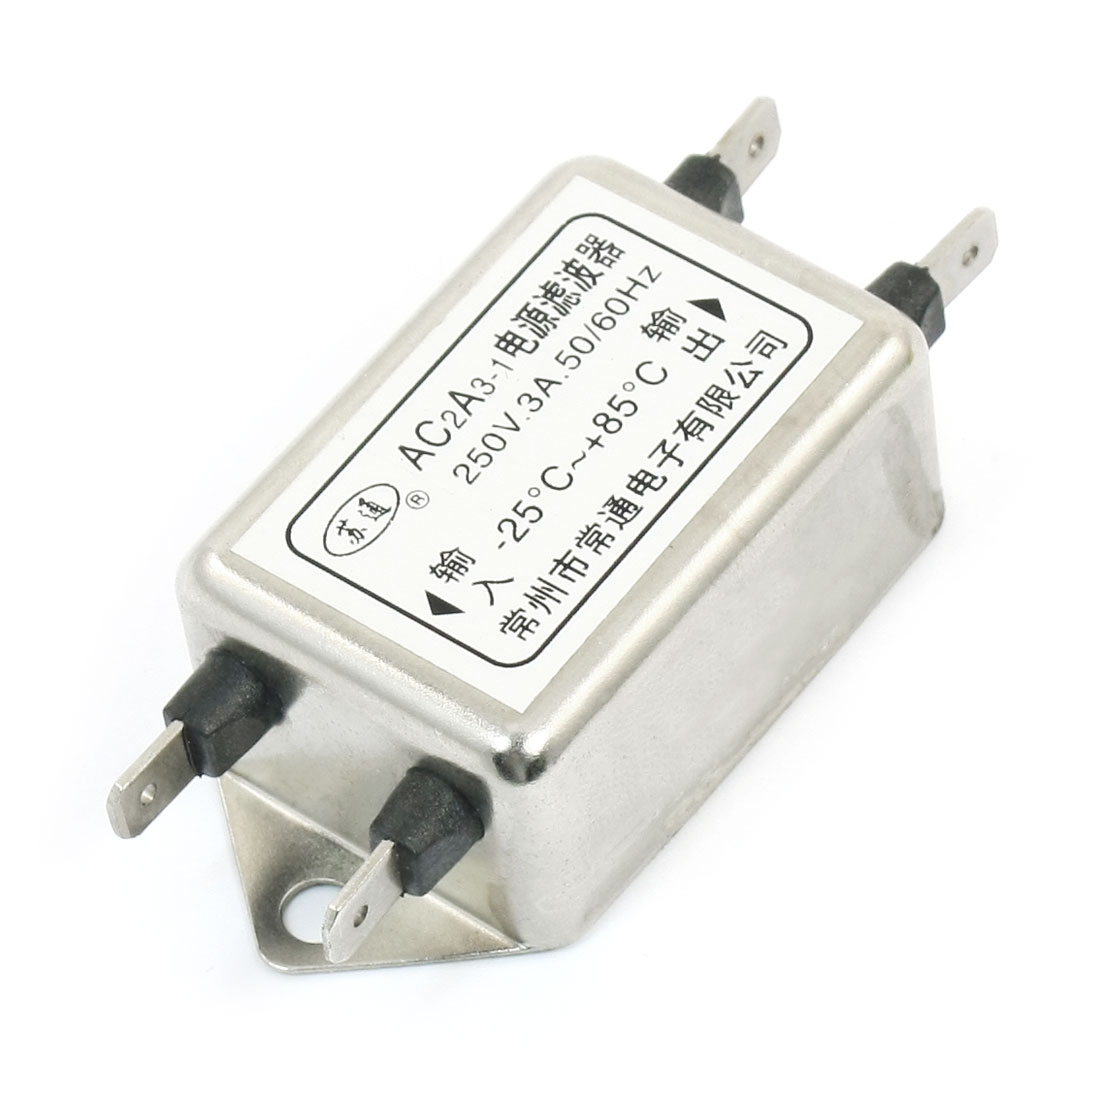 AC2A3-1 AC 250V 3A 4-Pin Soldering Rectangle Metal Case Single Phase Noise Suppressor General Purpose Power EMI Filter